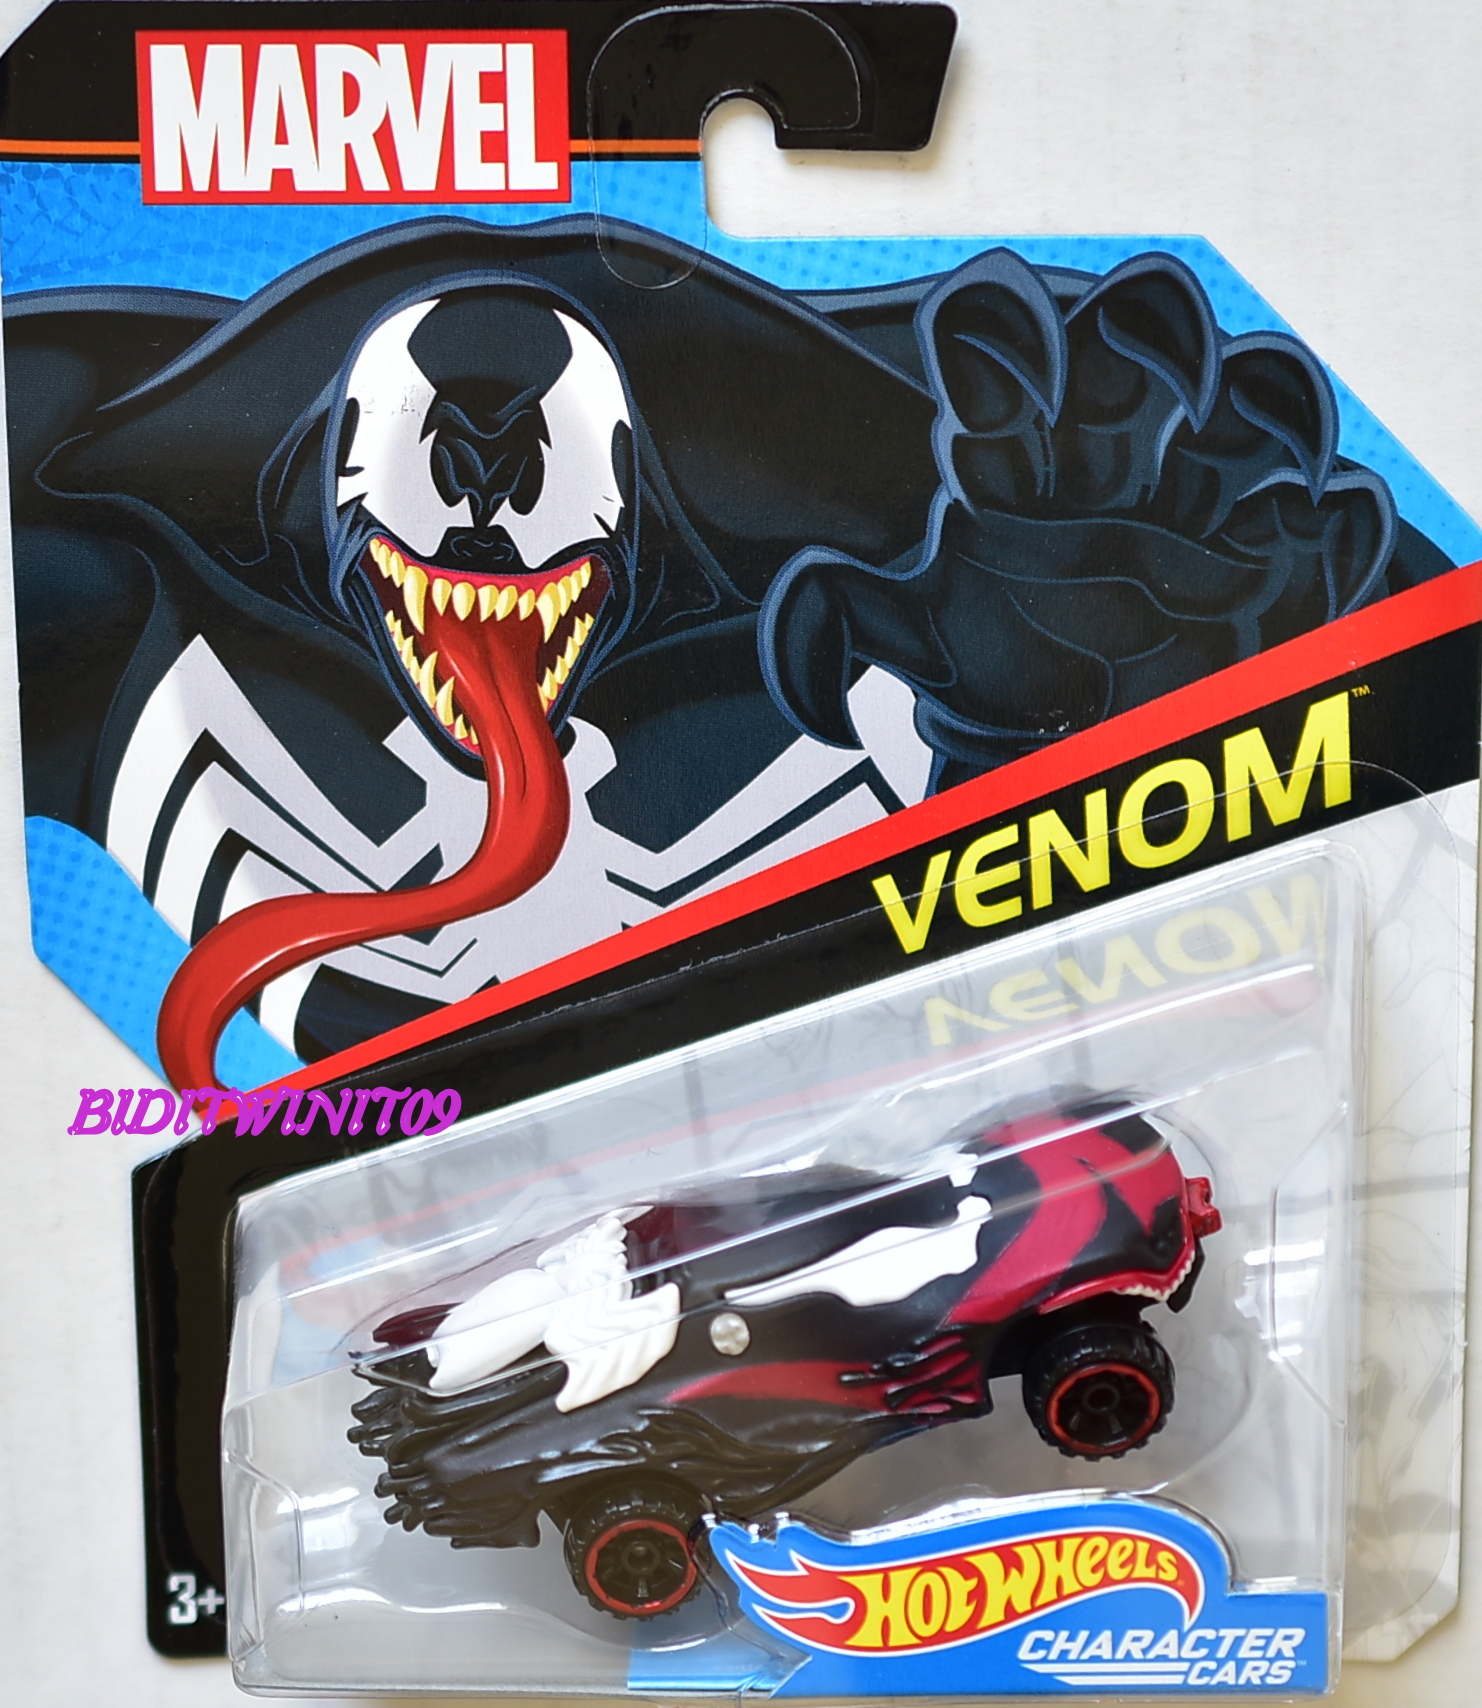 HOT WHEELS 2017 MARVEL VENOM